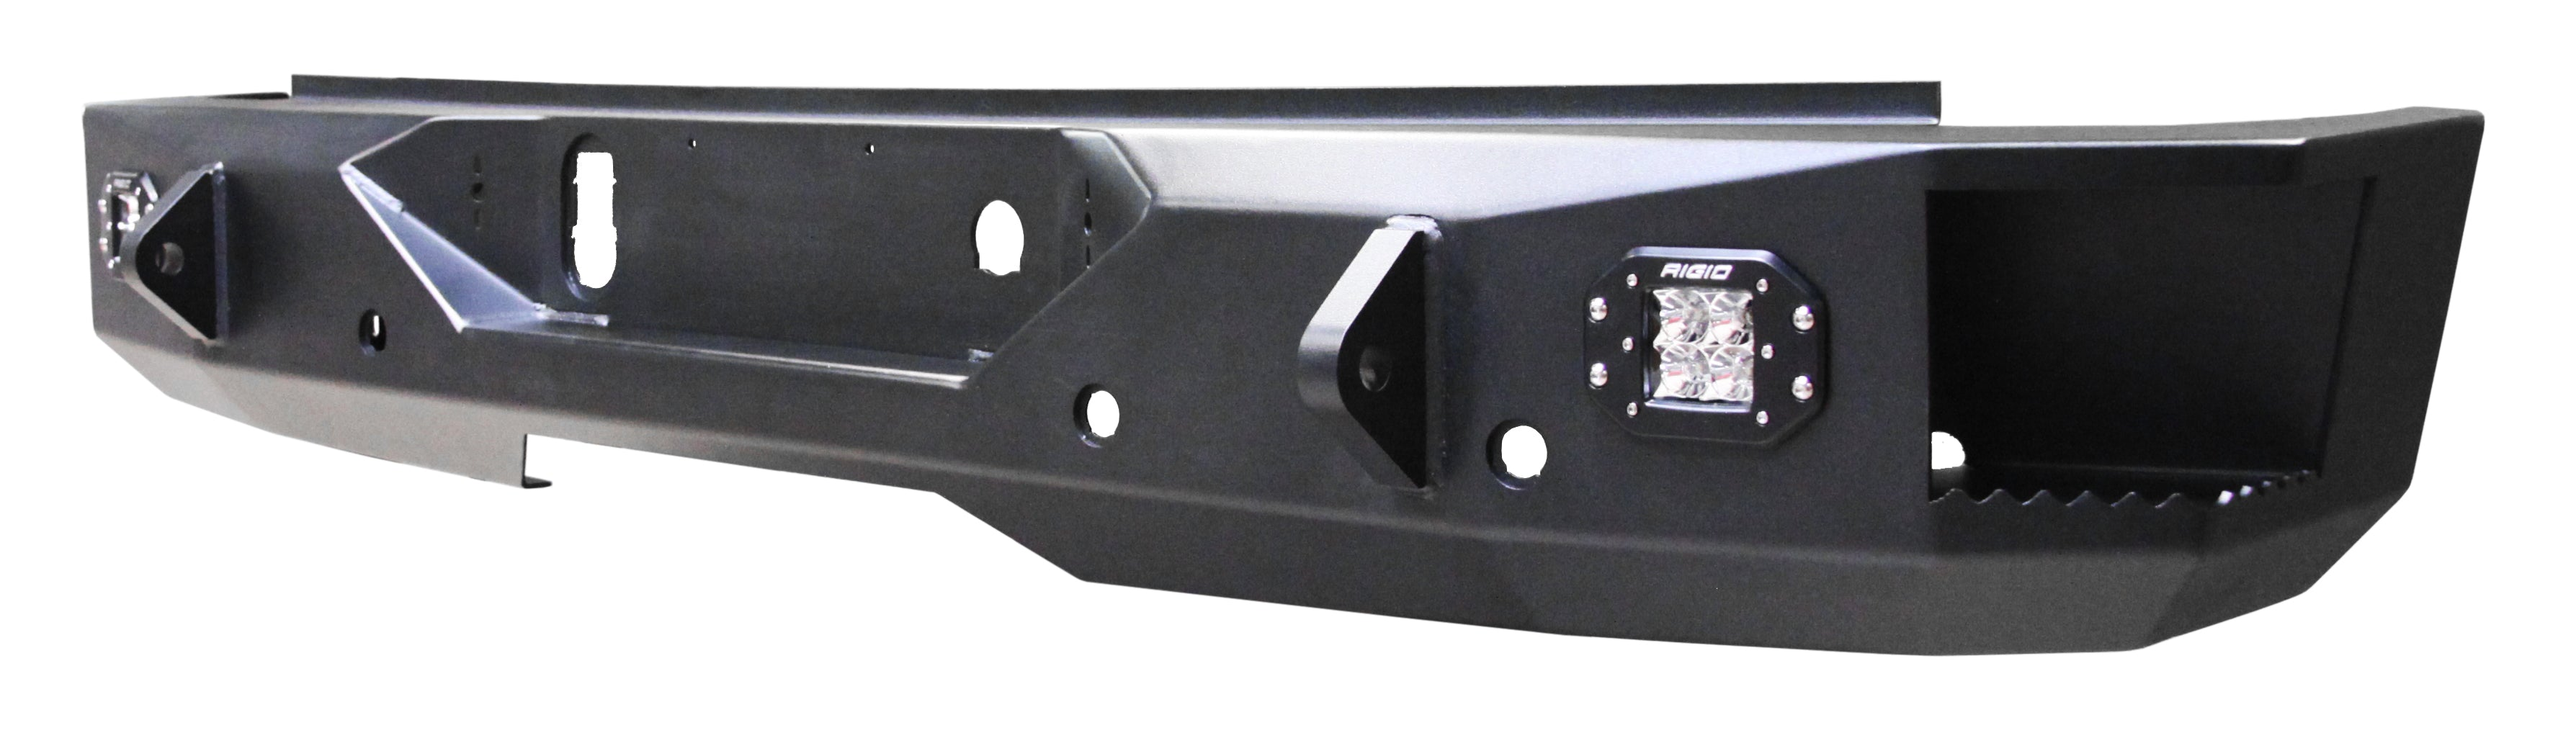 GMC - 2500/3500 (2011-2014) Rear Bumper